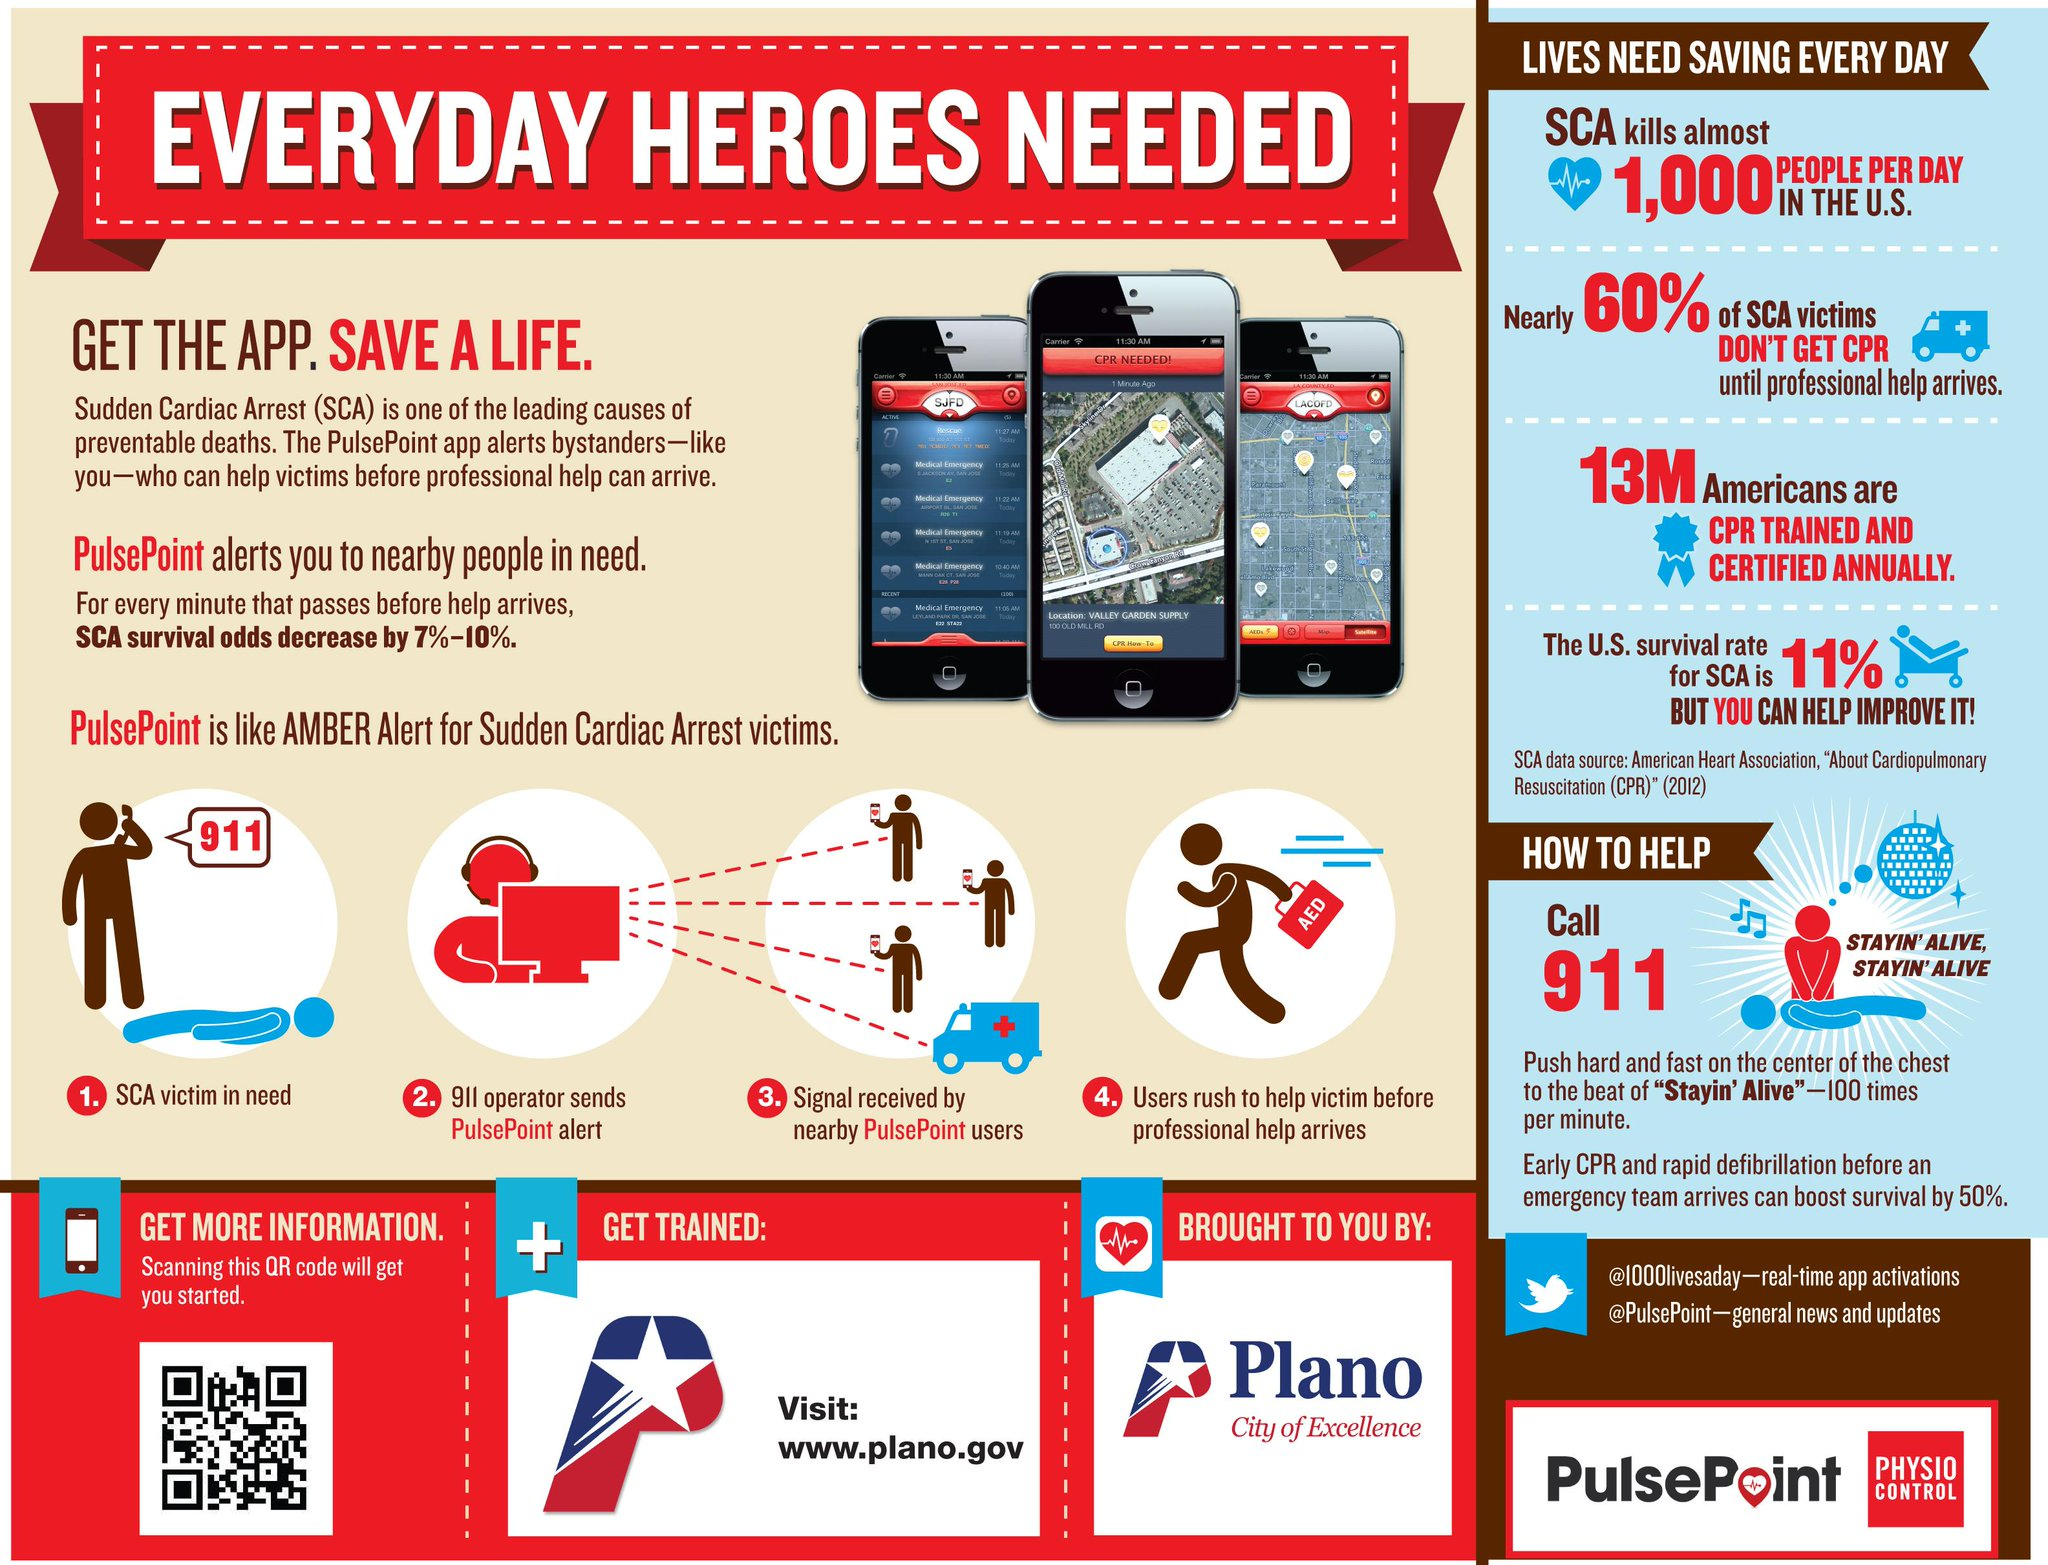 City of plano on twitter pulsepoint now available in plano to city of plano on twitter pulsepoint now available in plano to dispatch citizens to cpr needed events get the app httpteqy6pmoh7n xflitez Image collections